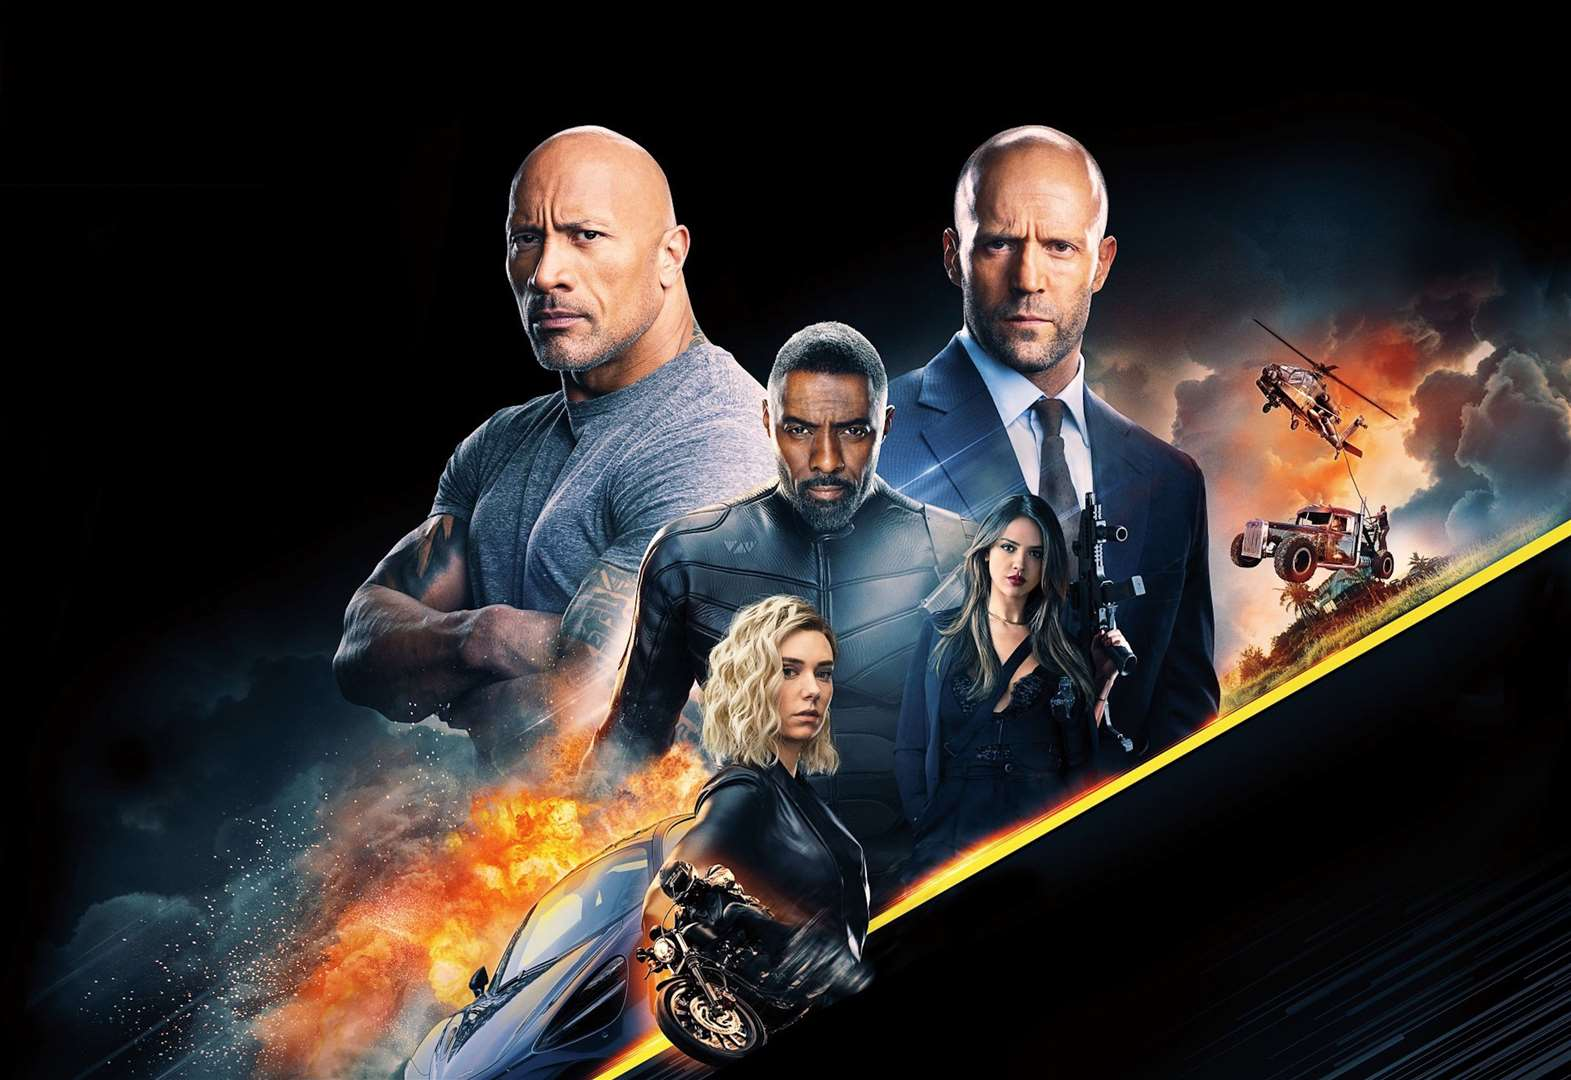 FILM REVIEW: Hobbs & Shaw (12A)